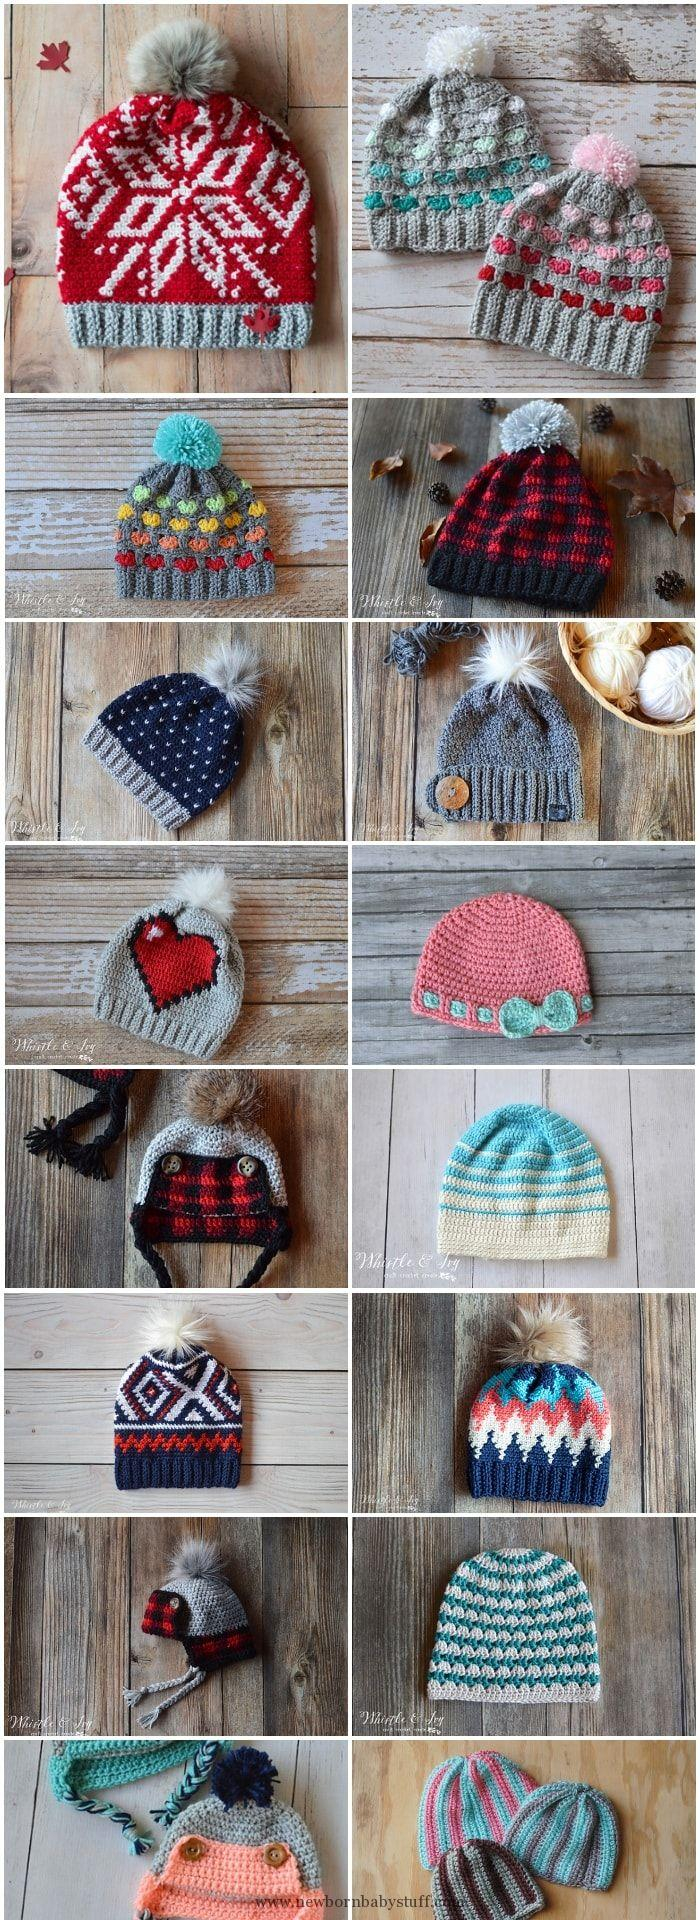 Trendy Baby Knitting Patterns Ba Knitting Patterns 16 Super Cute And Trendy Free Crochet Hat